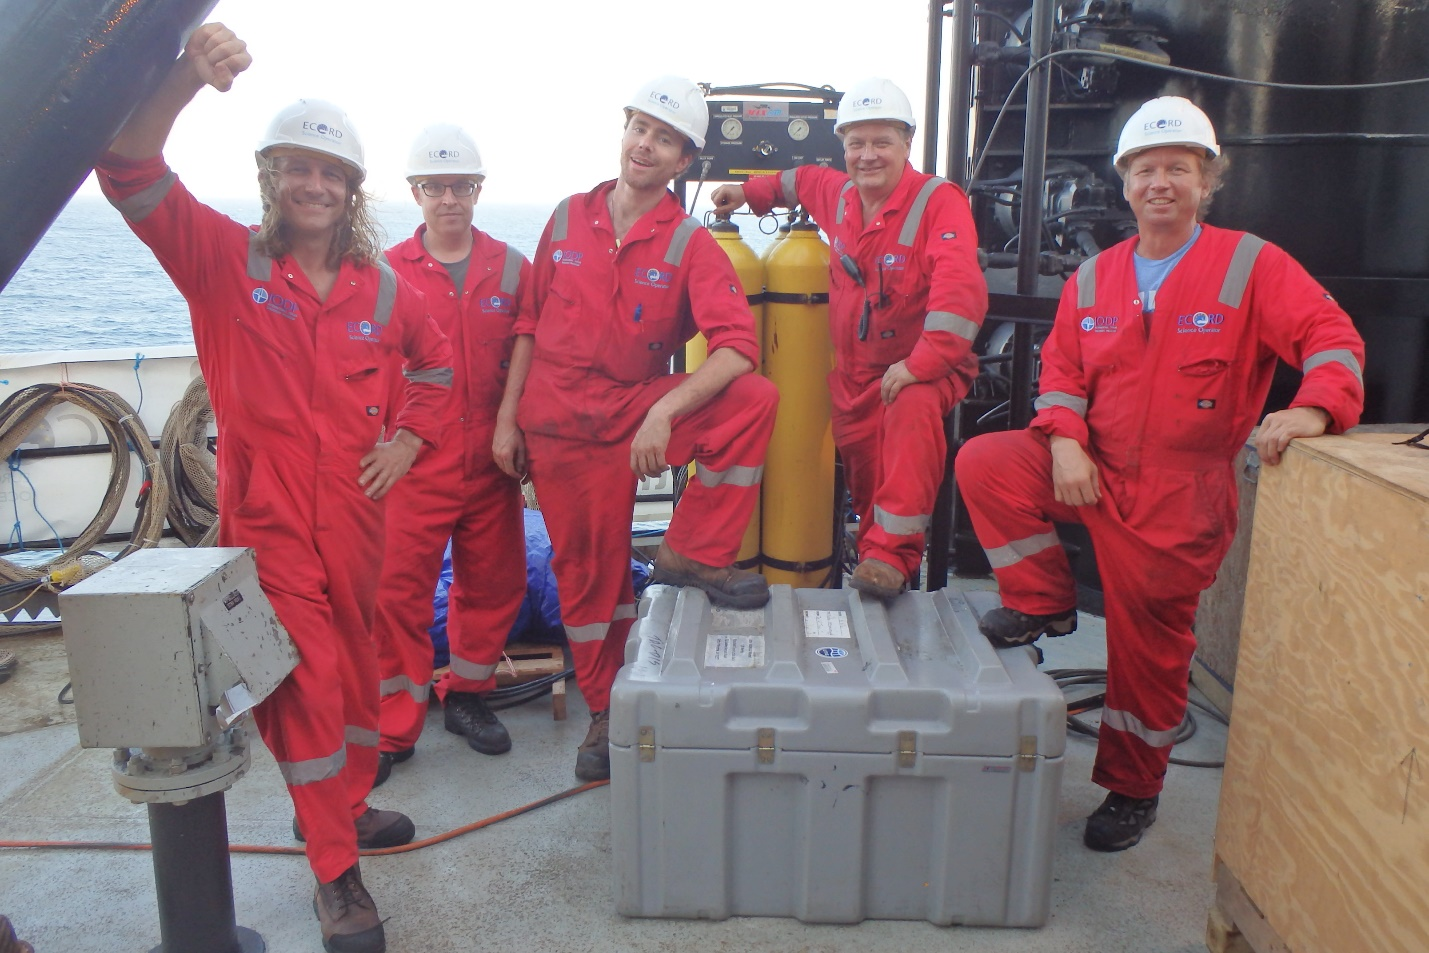 Borehole seismic team